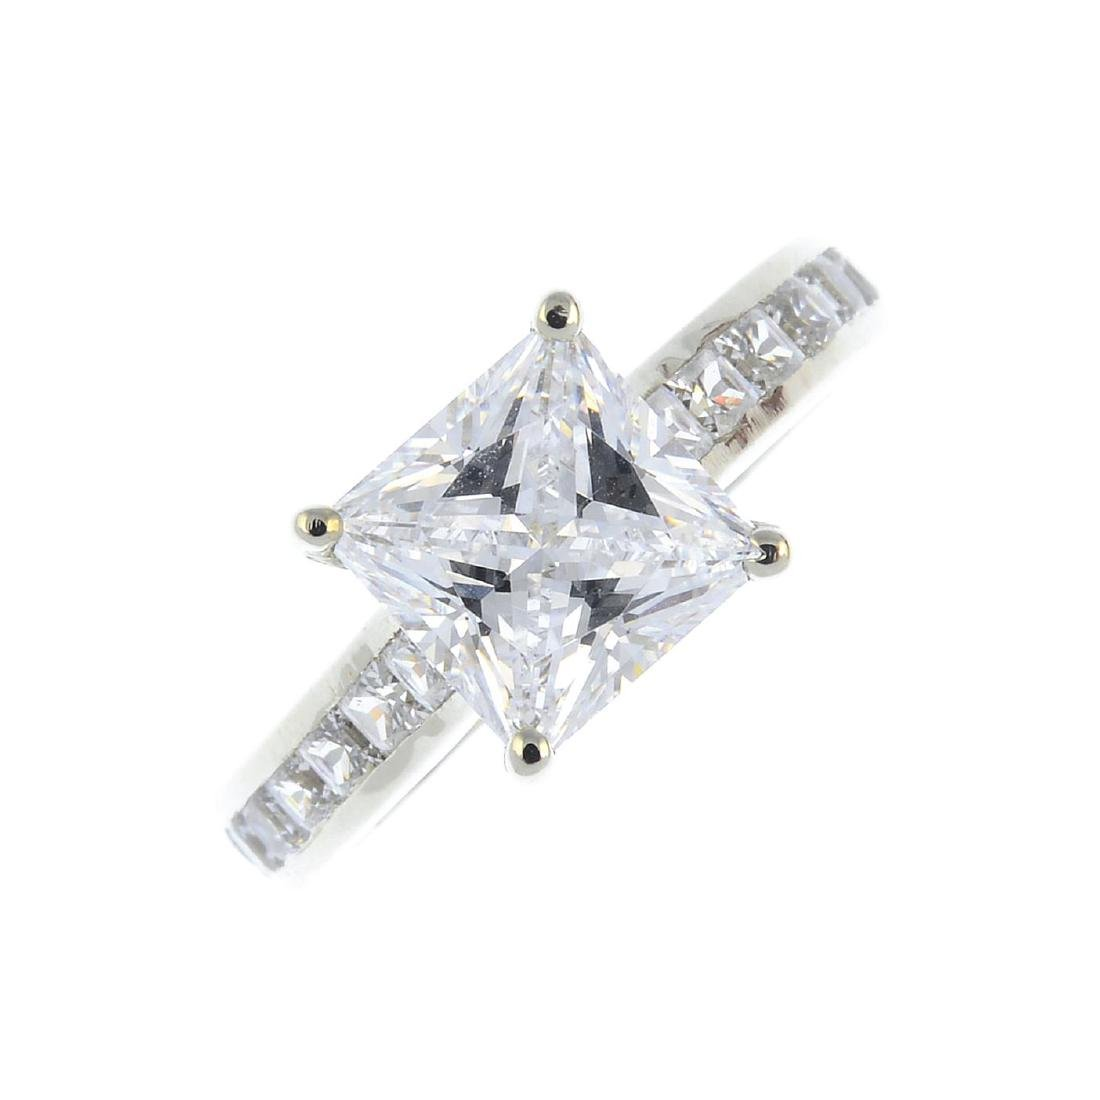 (52863) A cubic zirconia dress ring. The square-shape